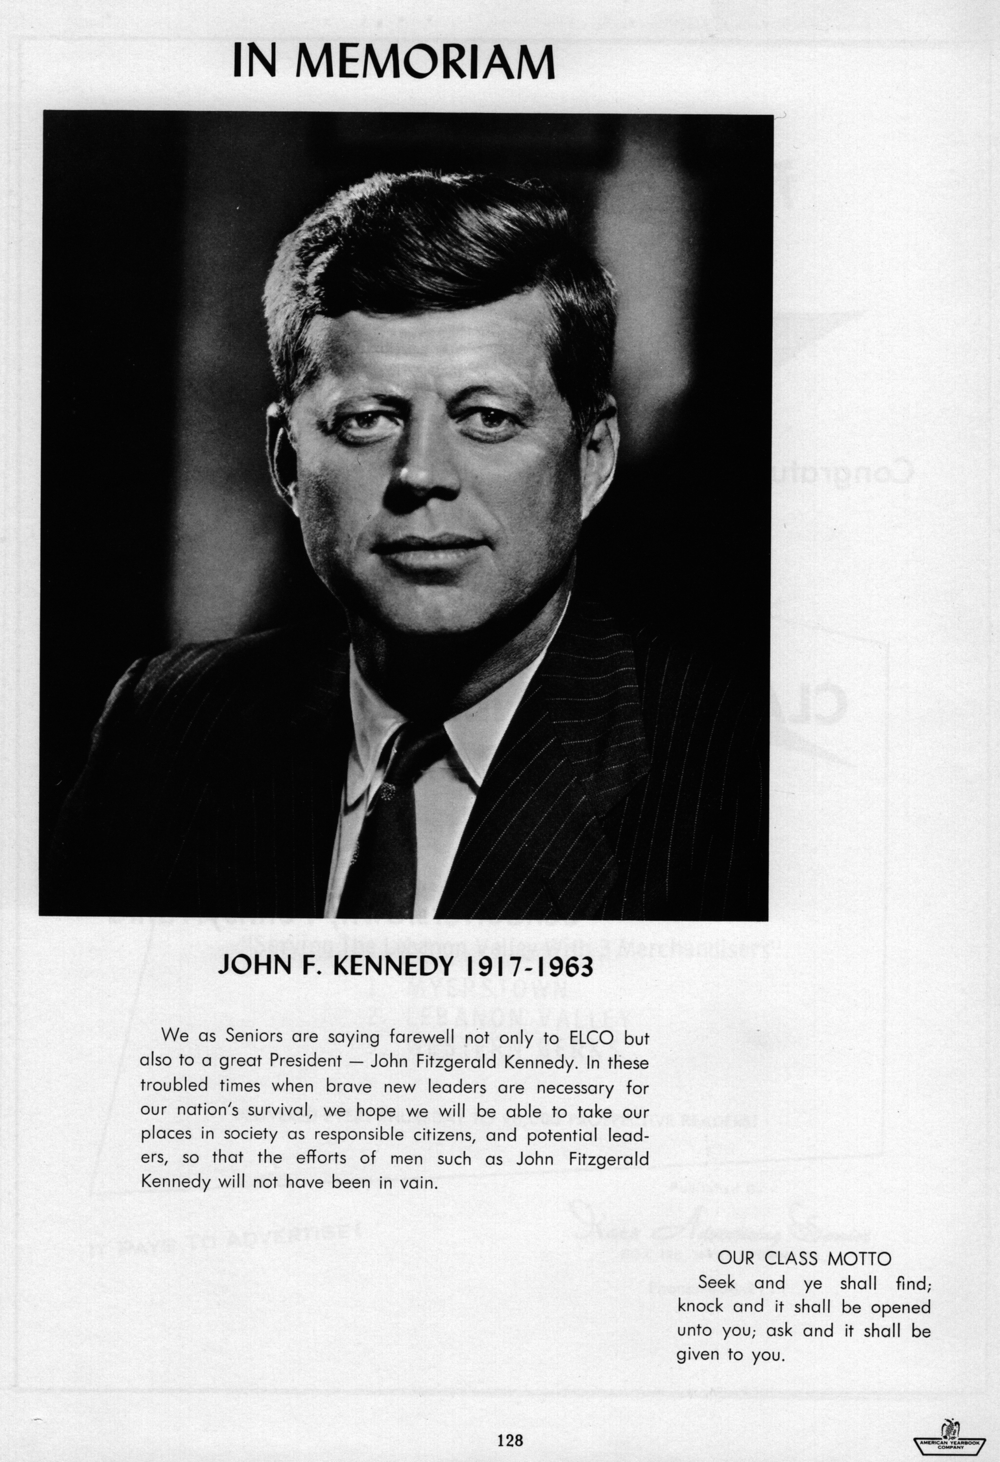 Final page of the 1964 Elco yearbook featuring JFK